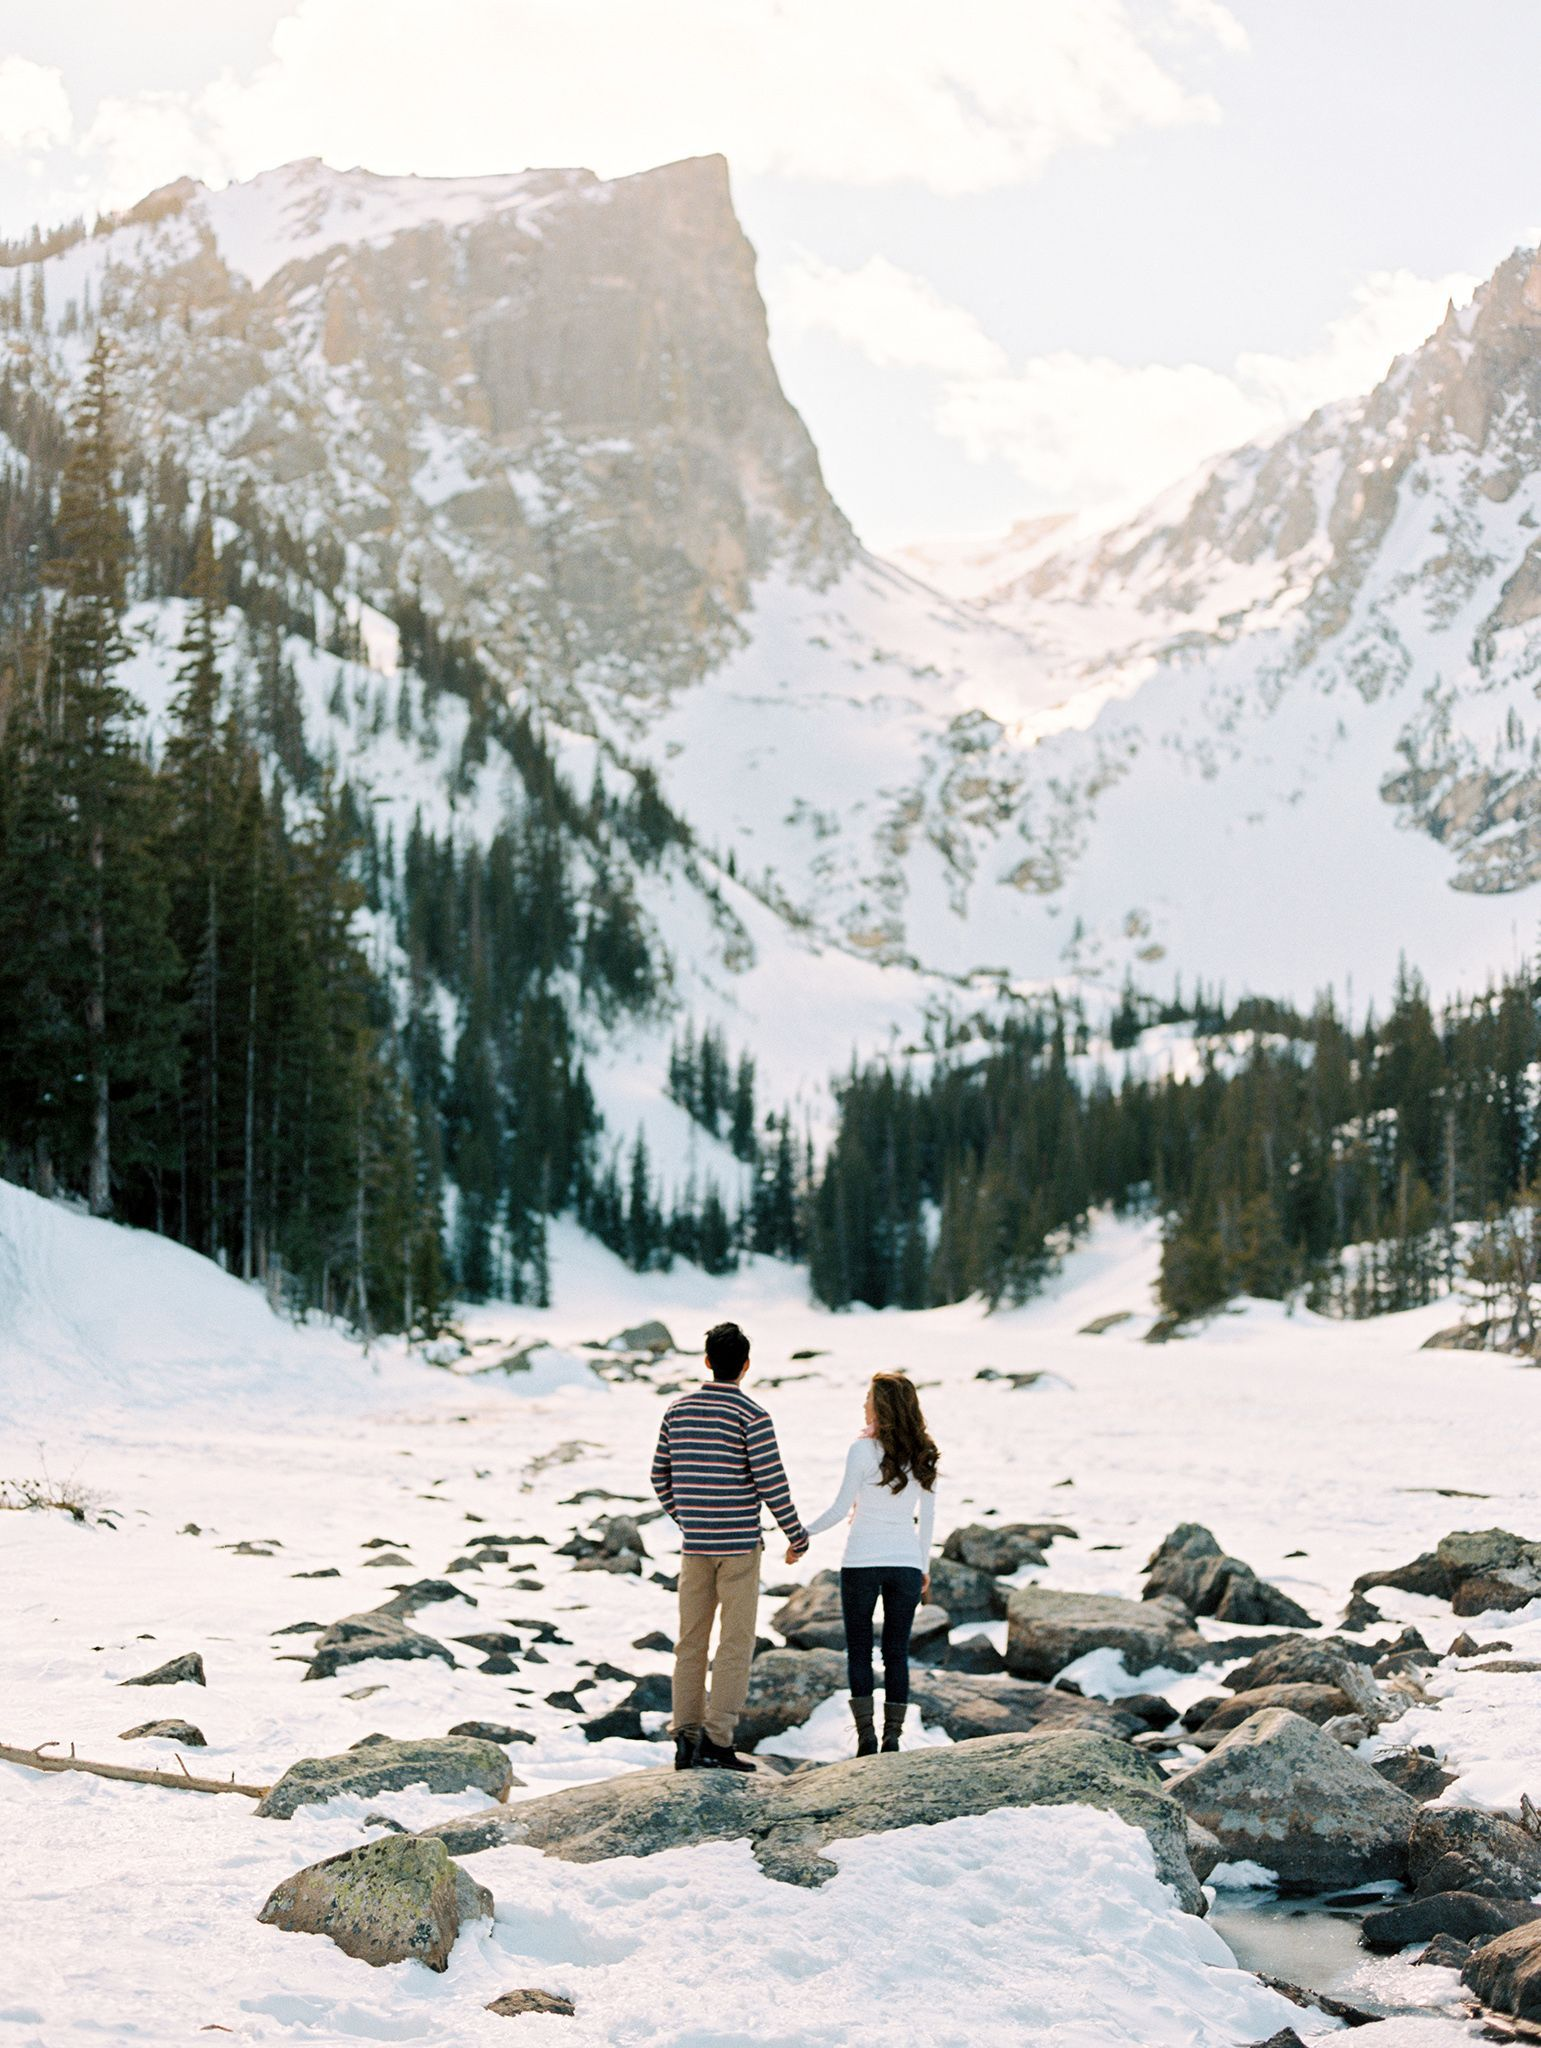 25 Snowy Engagement Photos to Inspire Your Own -  25 Snowy Engagement Photos to Inspire Your Own  - #Engagement #EngagementPhotosafricanamerican #EngagementPhotosbeach #EngagementPhotoscountry #EngagementPhotosfall #EngagementPhotosideas #EngagementPhotosoutfits #EngagementPhotosposes #EngagementPhotosspring #EngagementPhotoswinter #EngagementPhotoswithdog #Inspire #Photos #Snowy #summerEngagementPhotos #uniqueEngagementPhotos